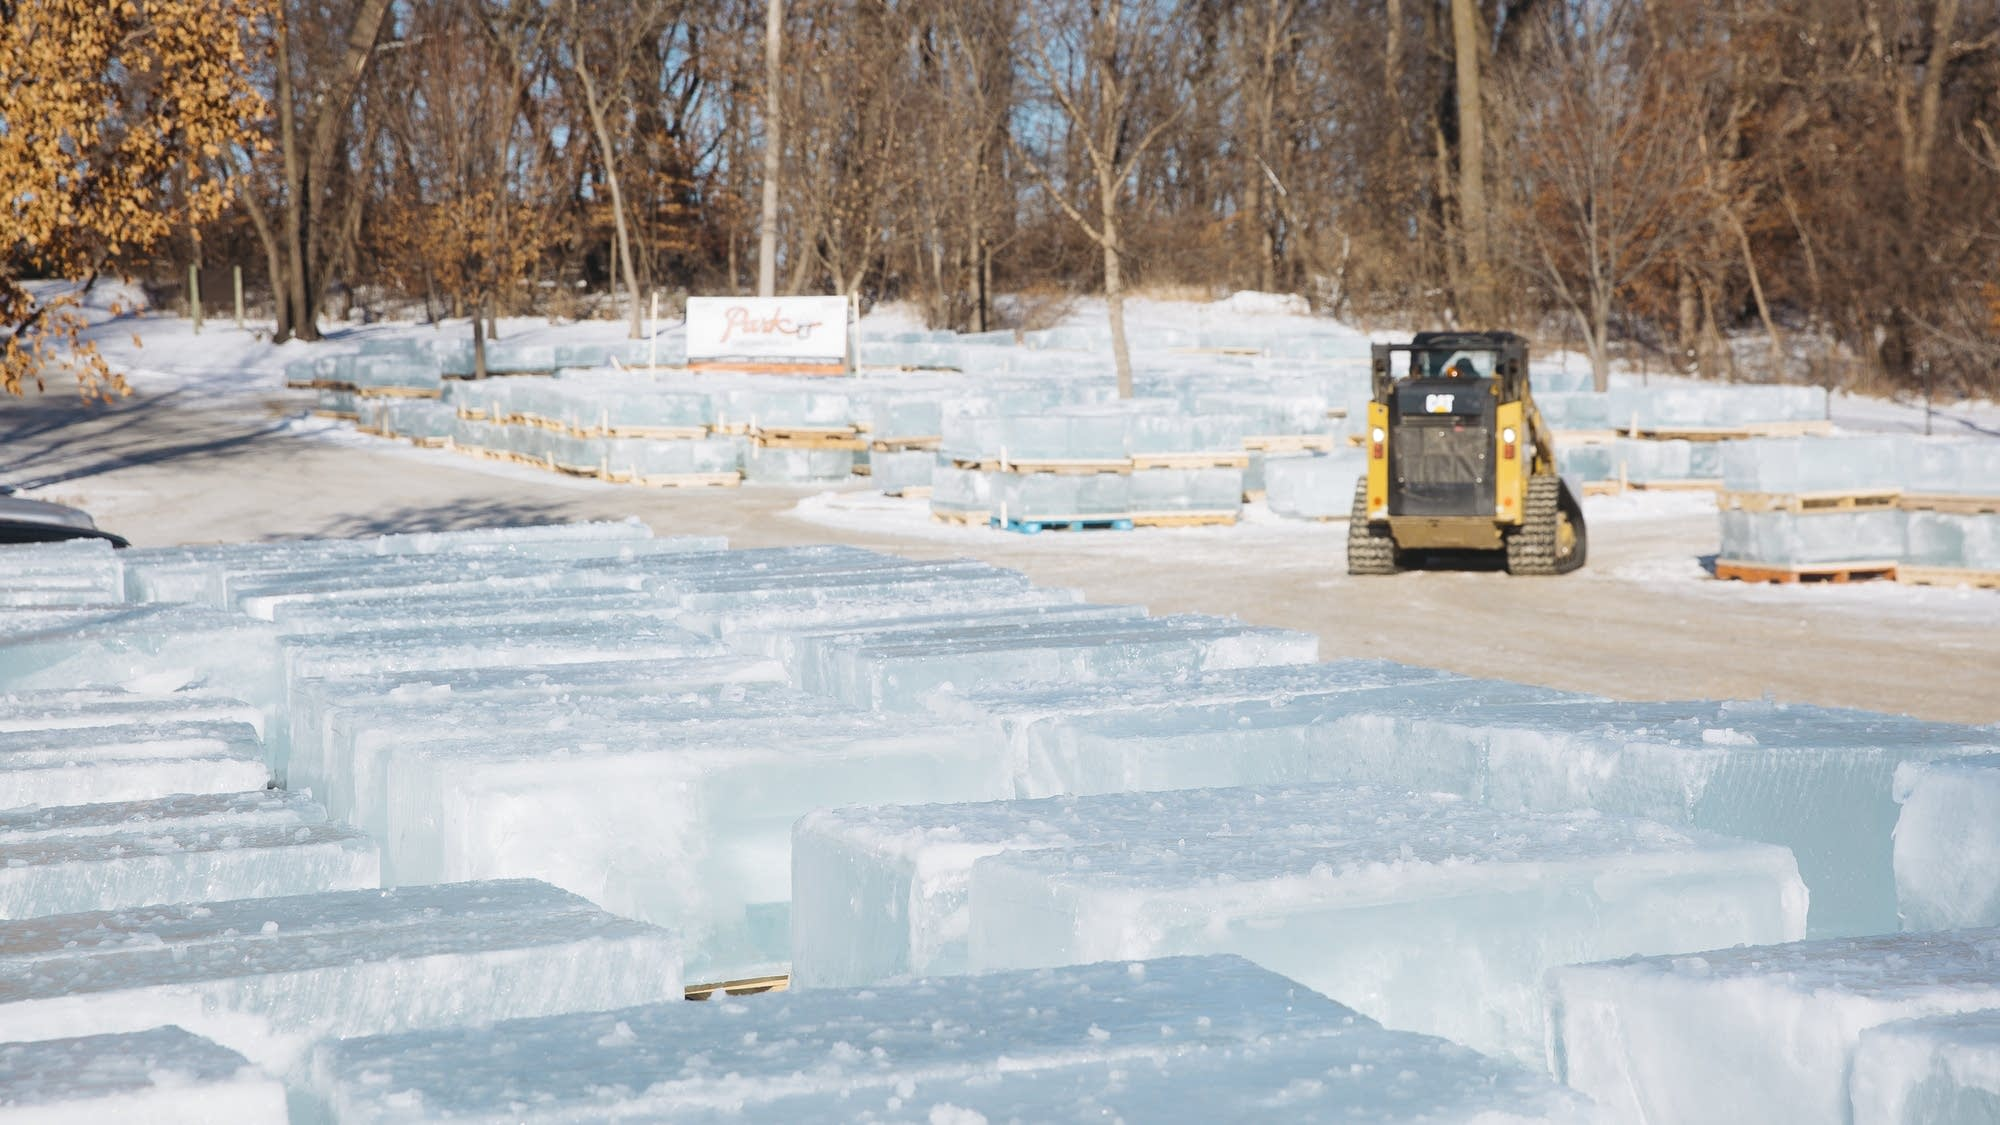 Hundreds of ice blocks wait to be loaded on to semi trucks